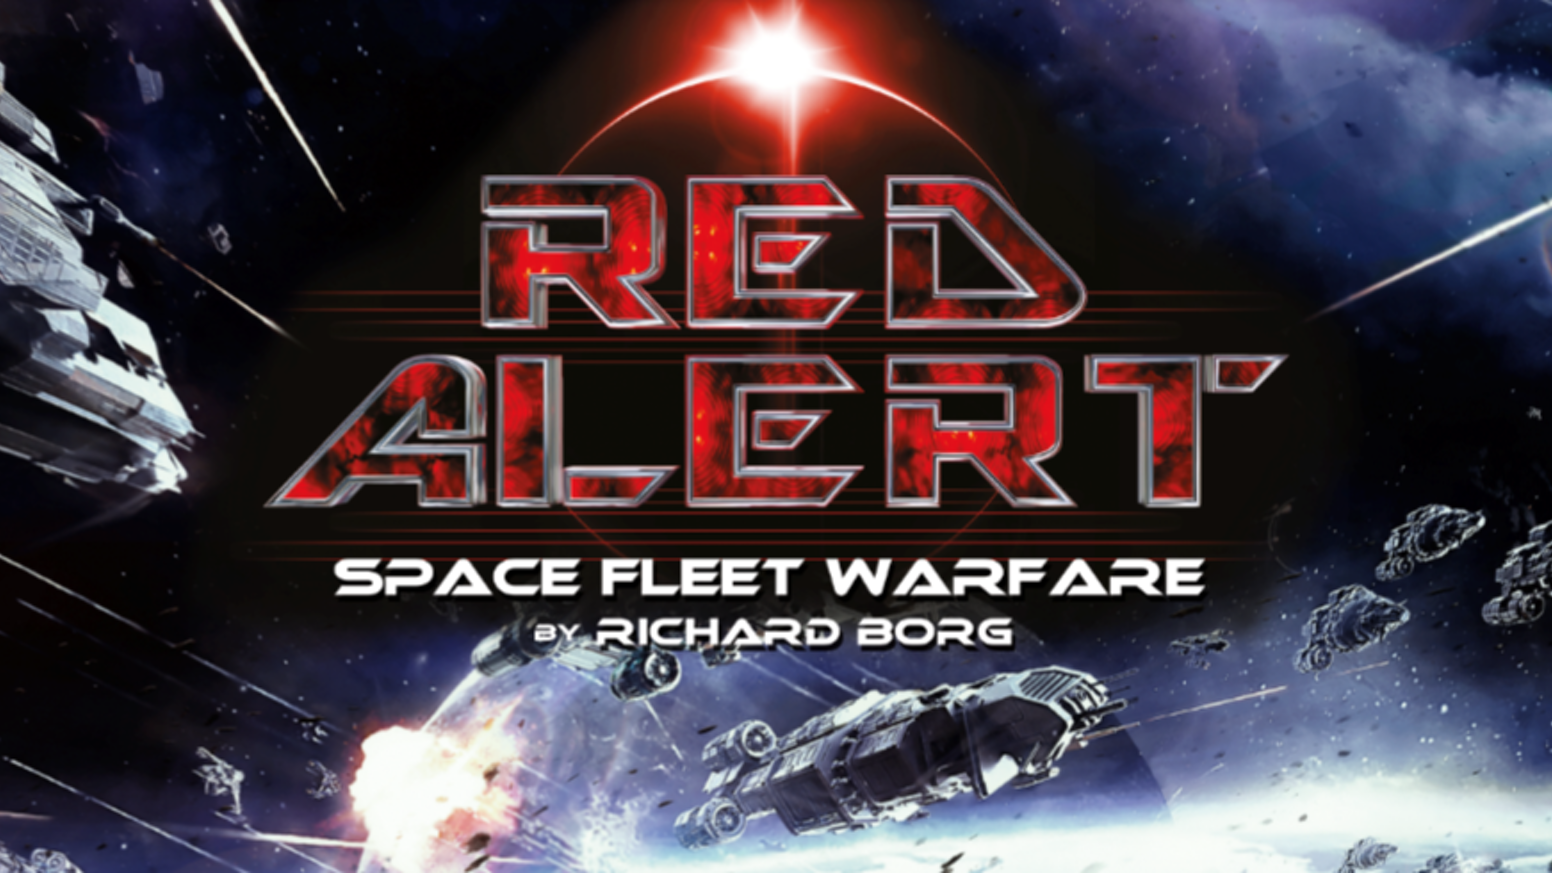 Richard Borg's Red Alert: Space Fleet Warfare board game